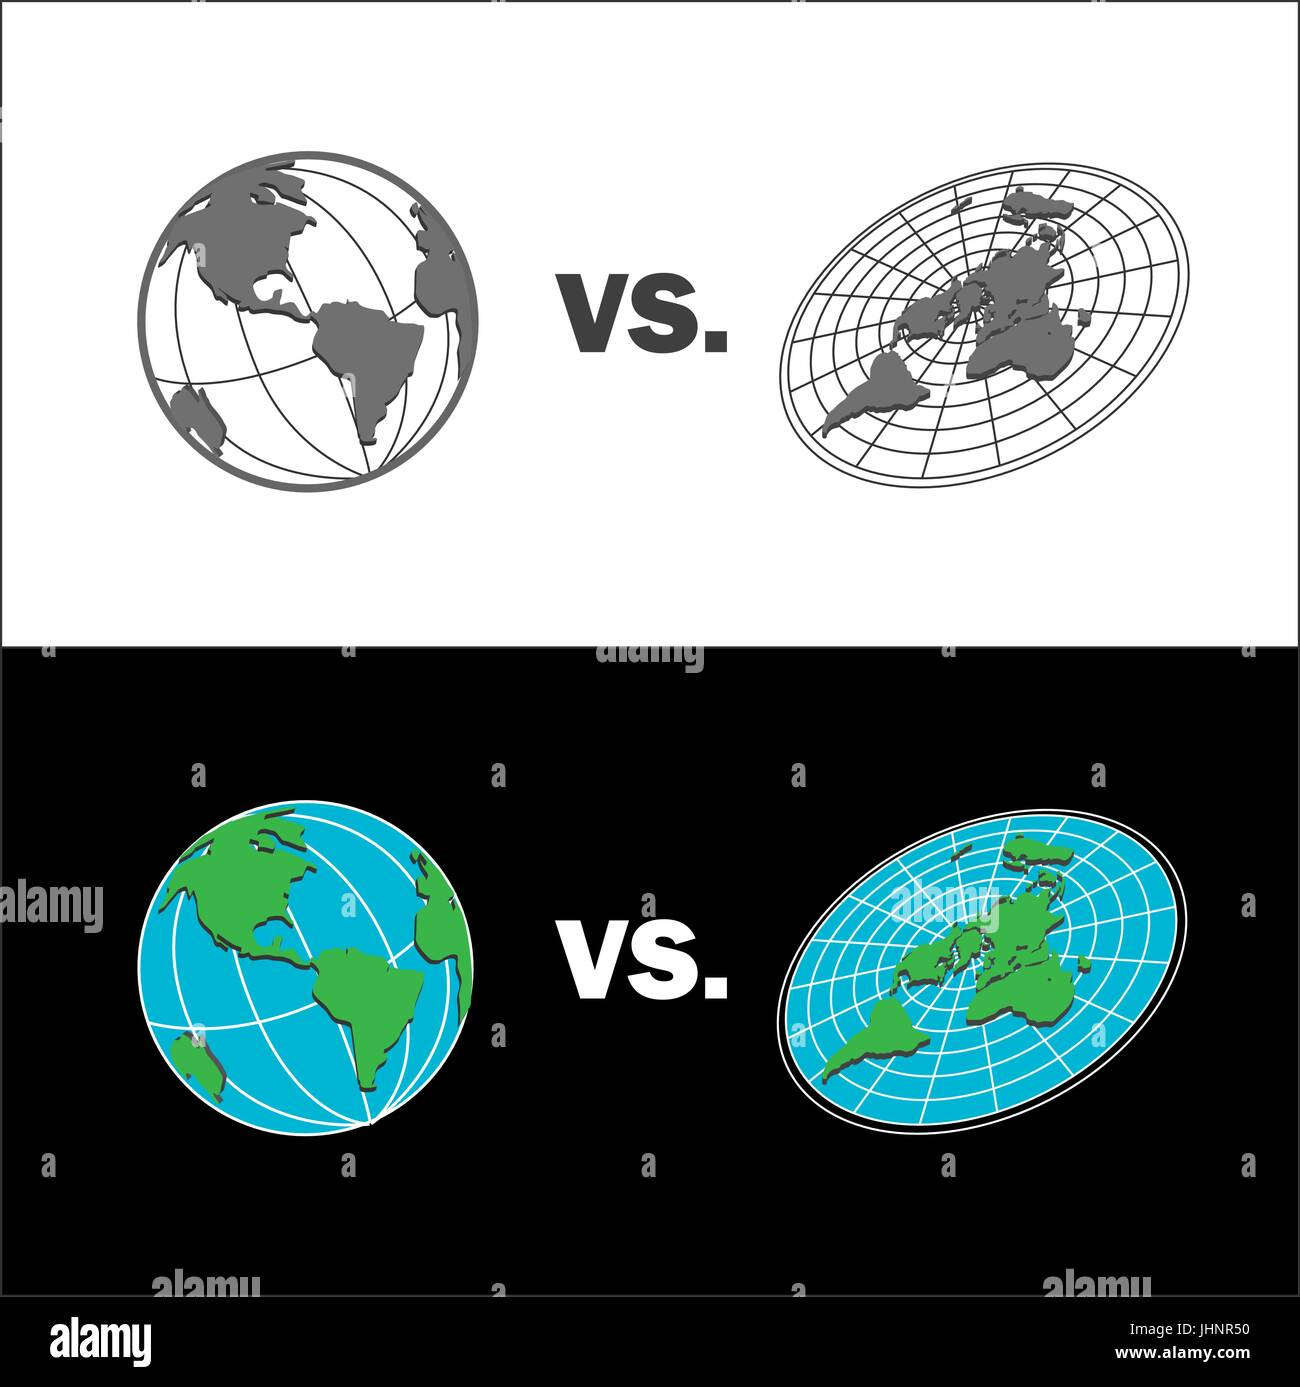 Official Flat Earth Map.Flat Earth Vs Sphere Earth Map Isolated Vector Illustration Stock